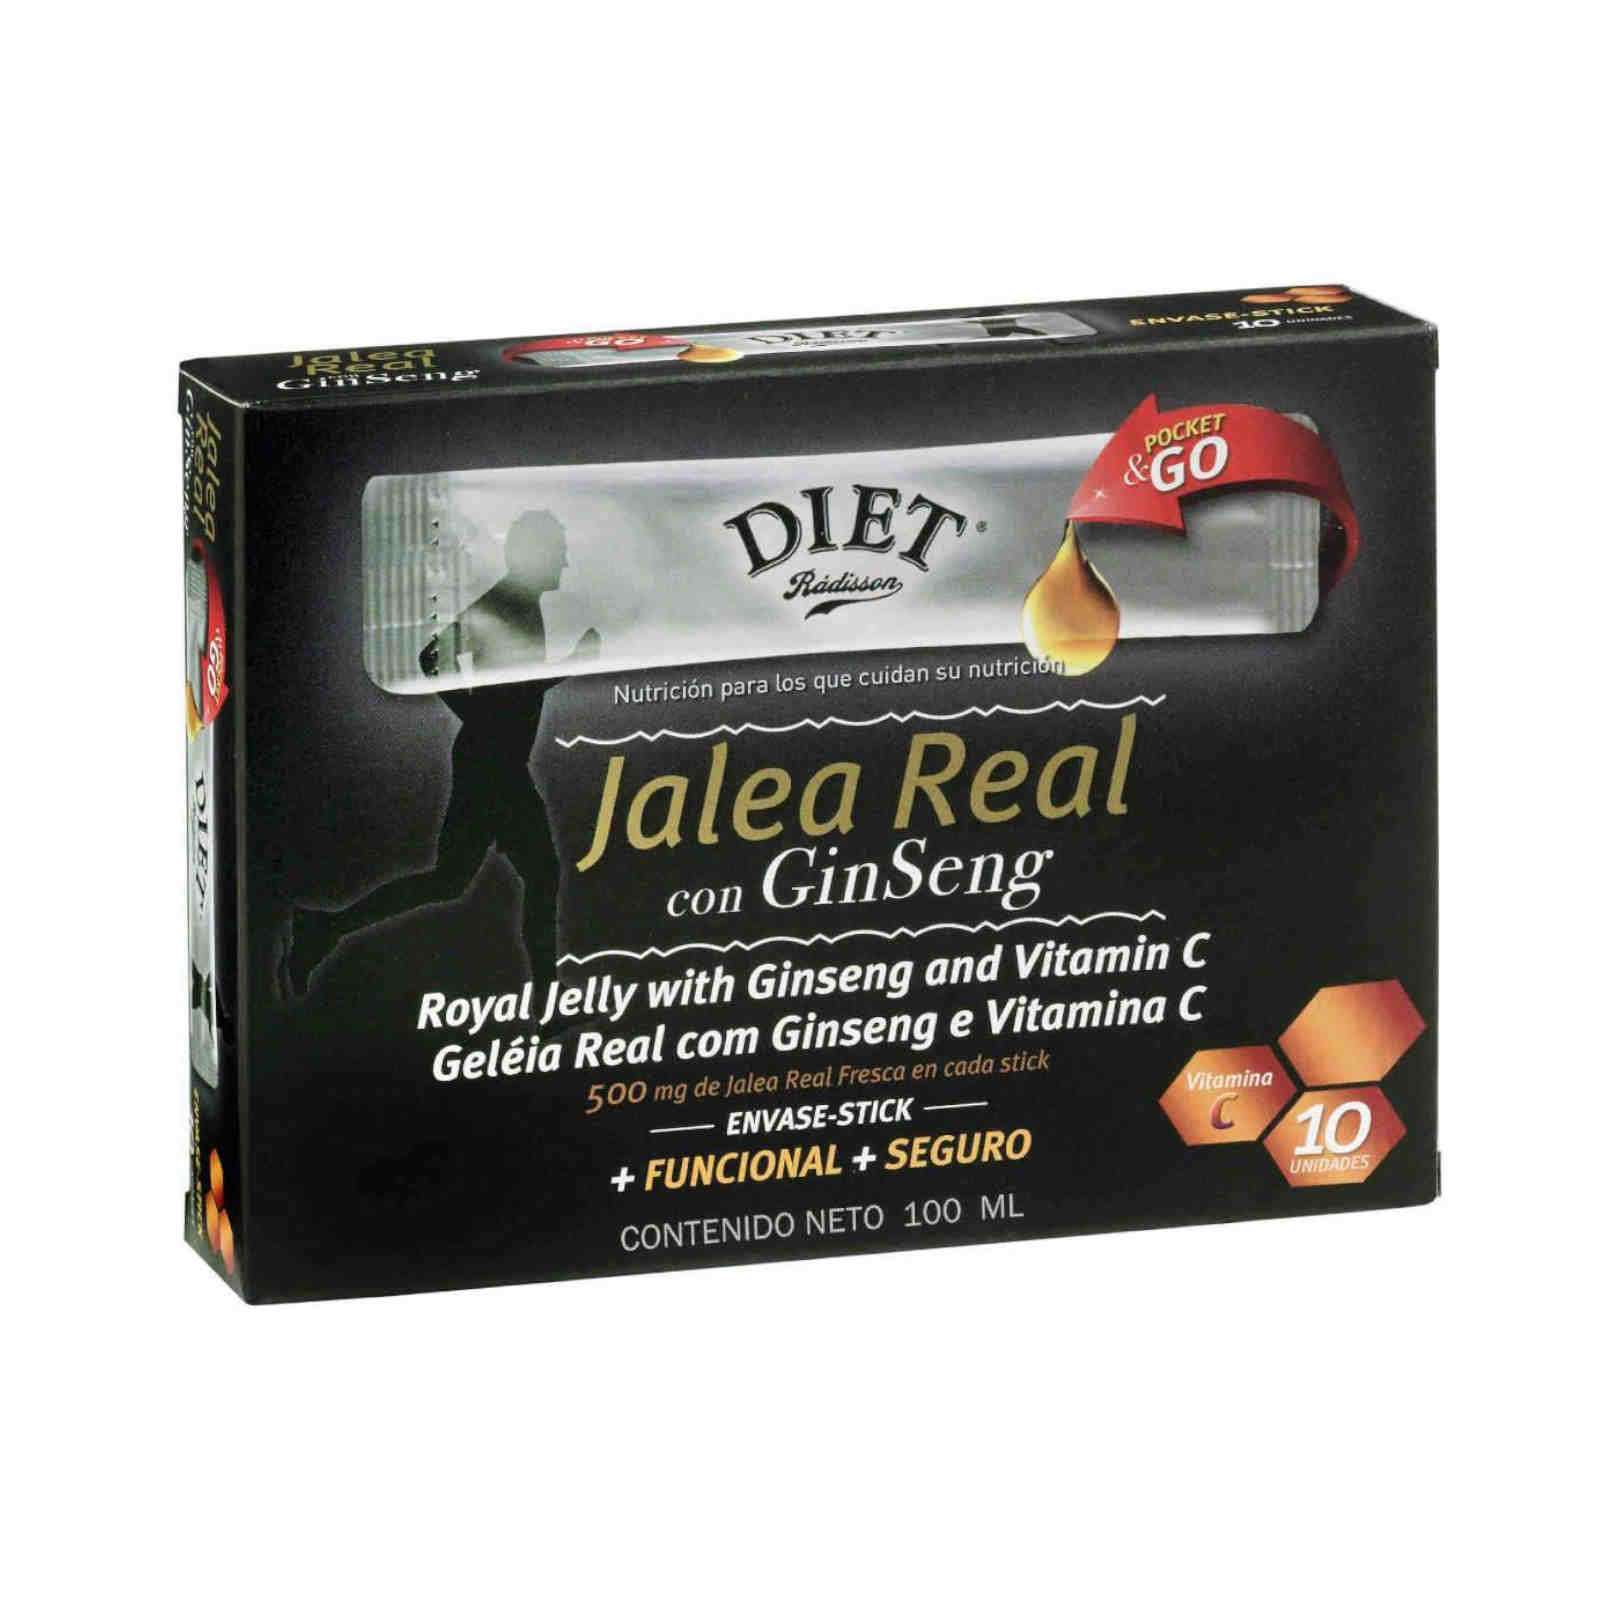 JALEA REAL CON GINSENG - 100ml